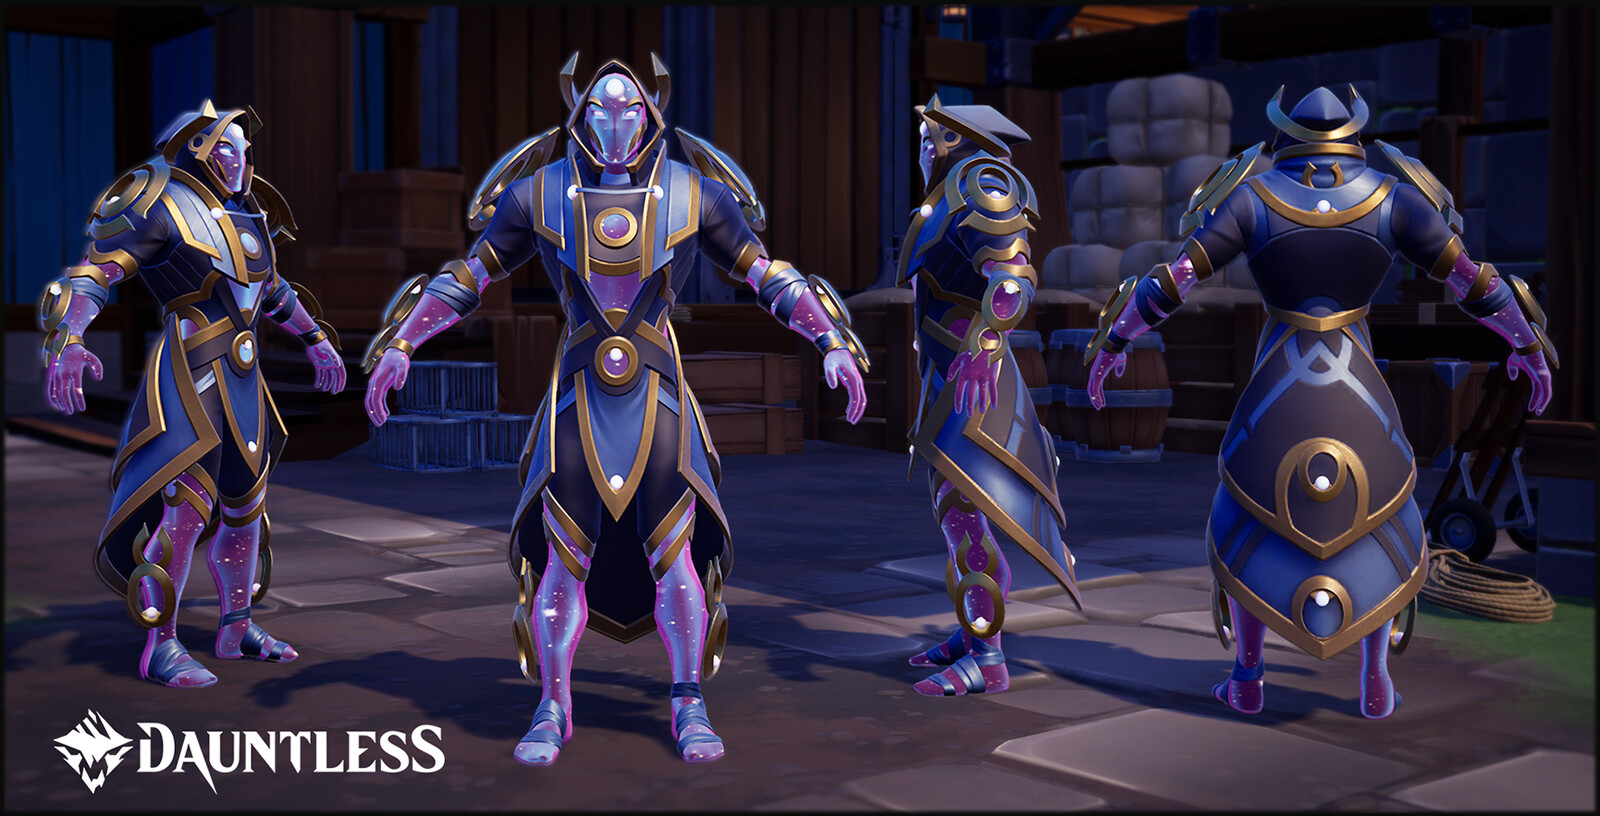 Void Mind Ultra Armor Set, LVL 50 Hunt Pass reward for the season of Relics and Ruins. 'Celestial' skin shader provided by Phoenix Labs.